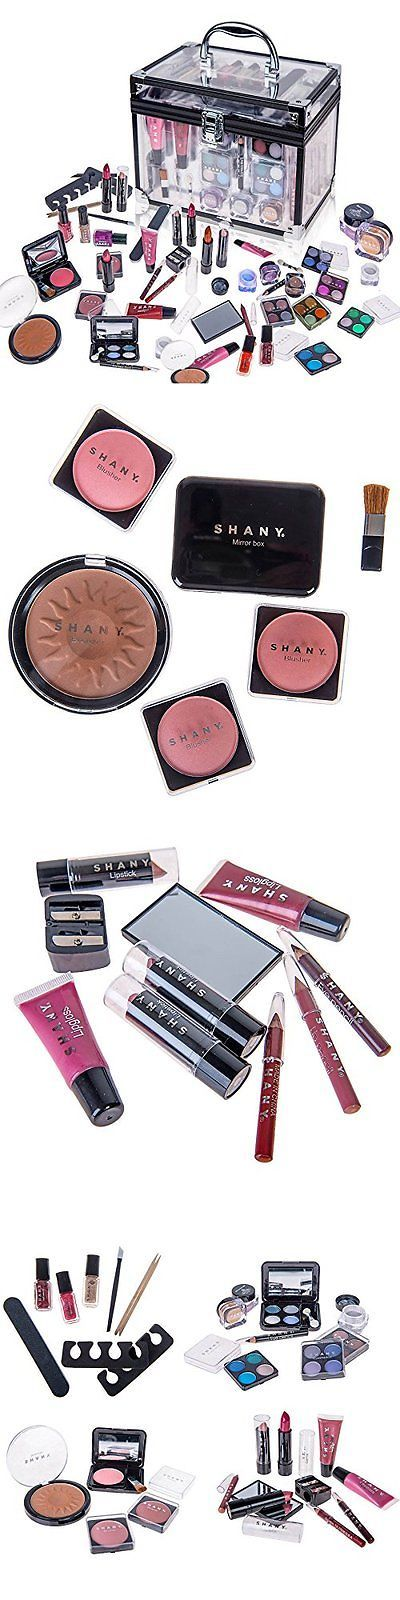 Makeup Sets and Kits: Complete Full Beauty Cosmetic Makeup Starter Kit Set Beginner Newbies Girls Box -> BUY IT NOW ONLY: $49.61 on eBay!